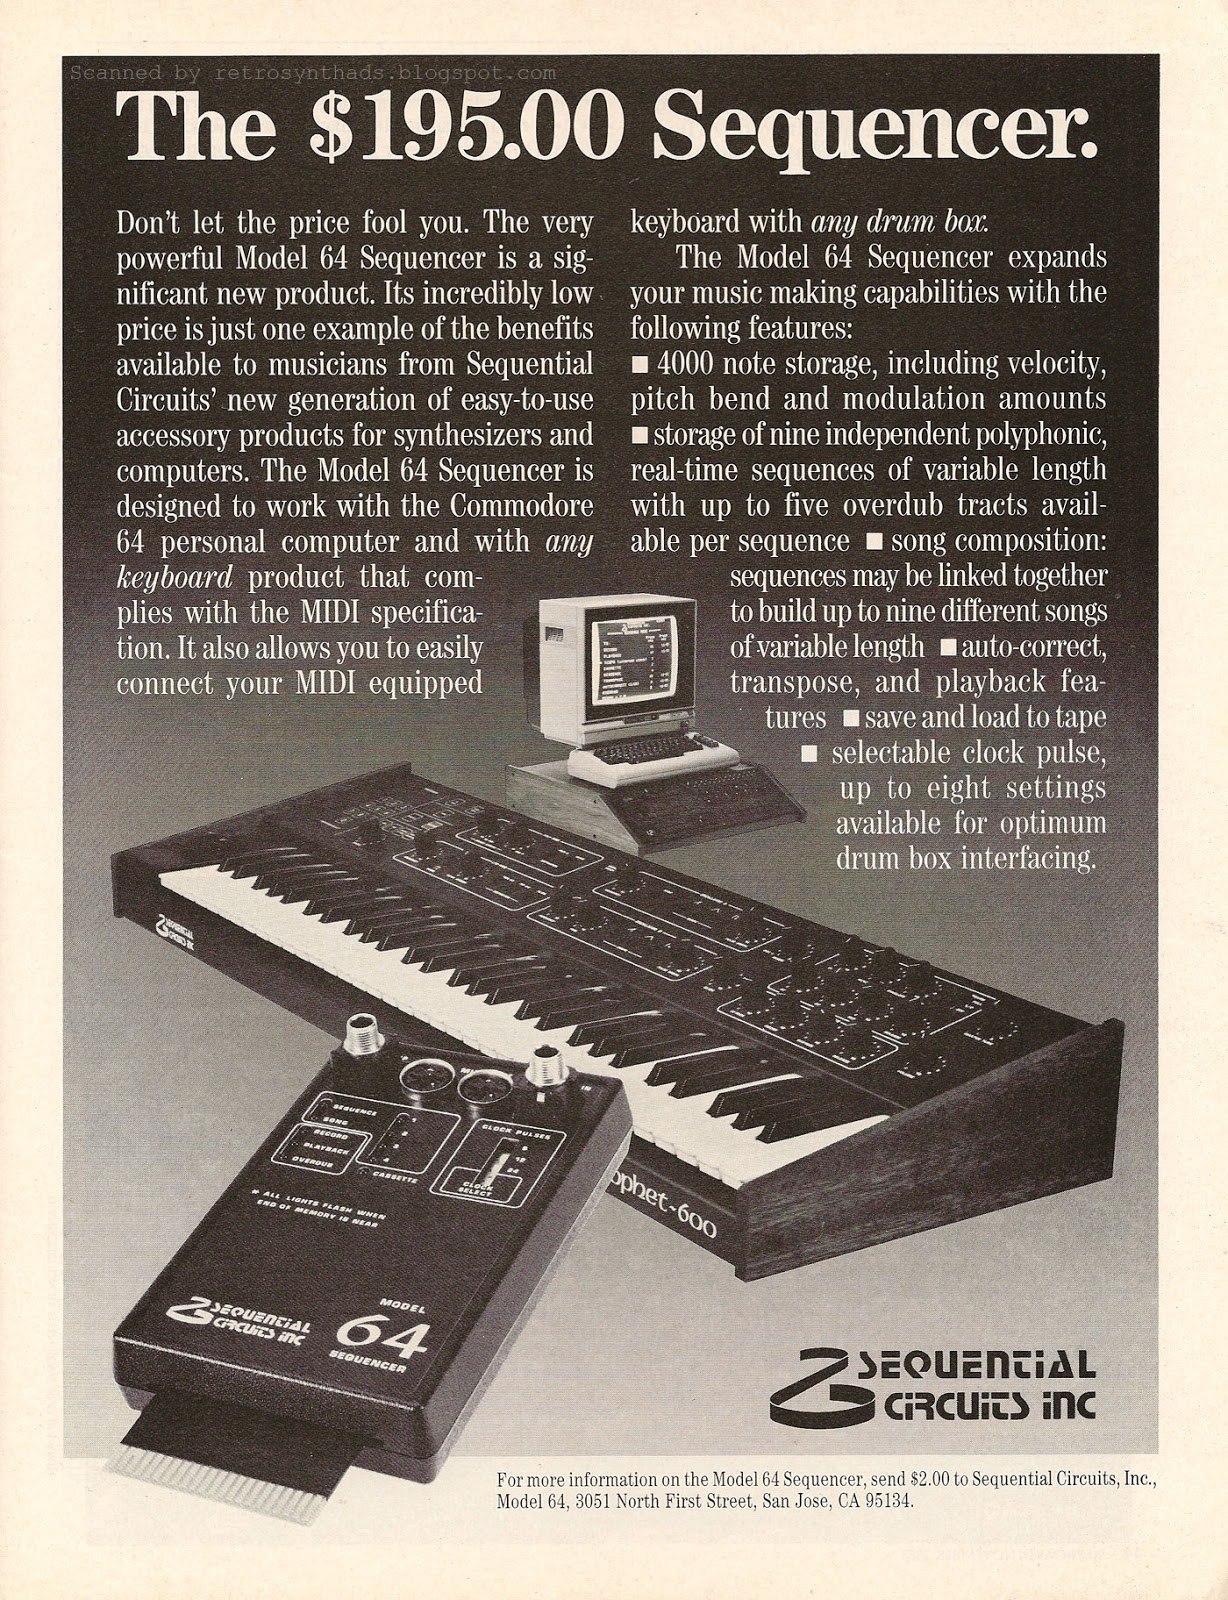 Retro Synth Ads Sequential Circuits Inc Model 64 Sequencer The Circuit Board Dream Maker Rs101 19500 Ad Keyboard 1983